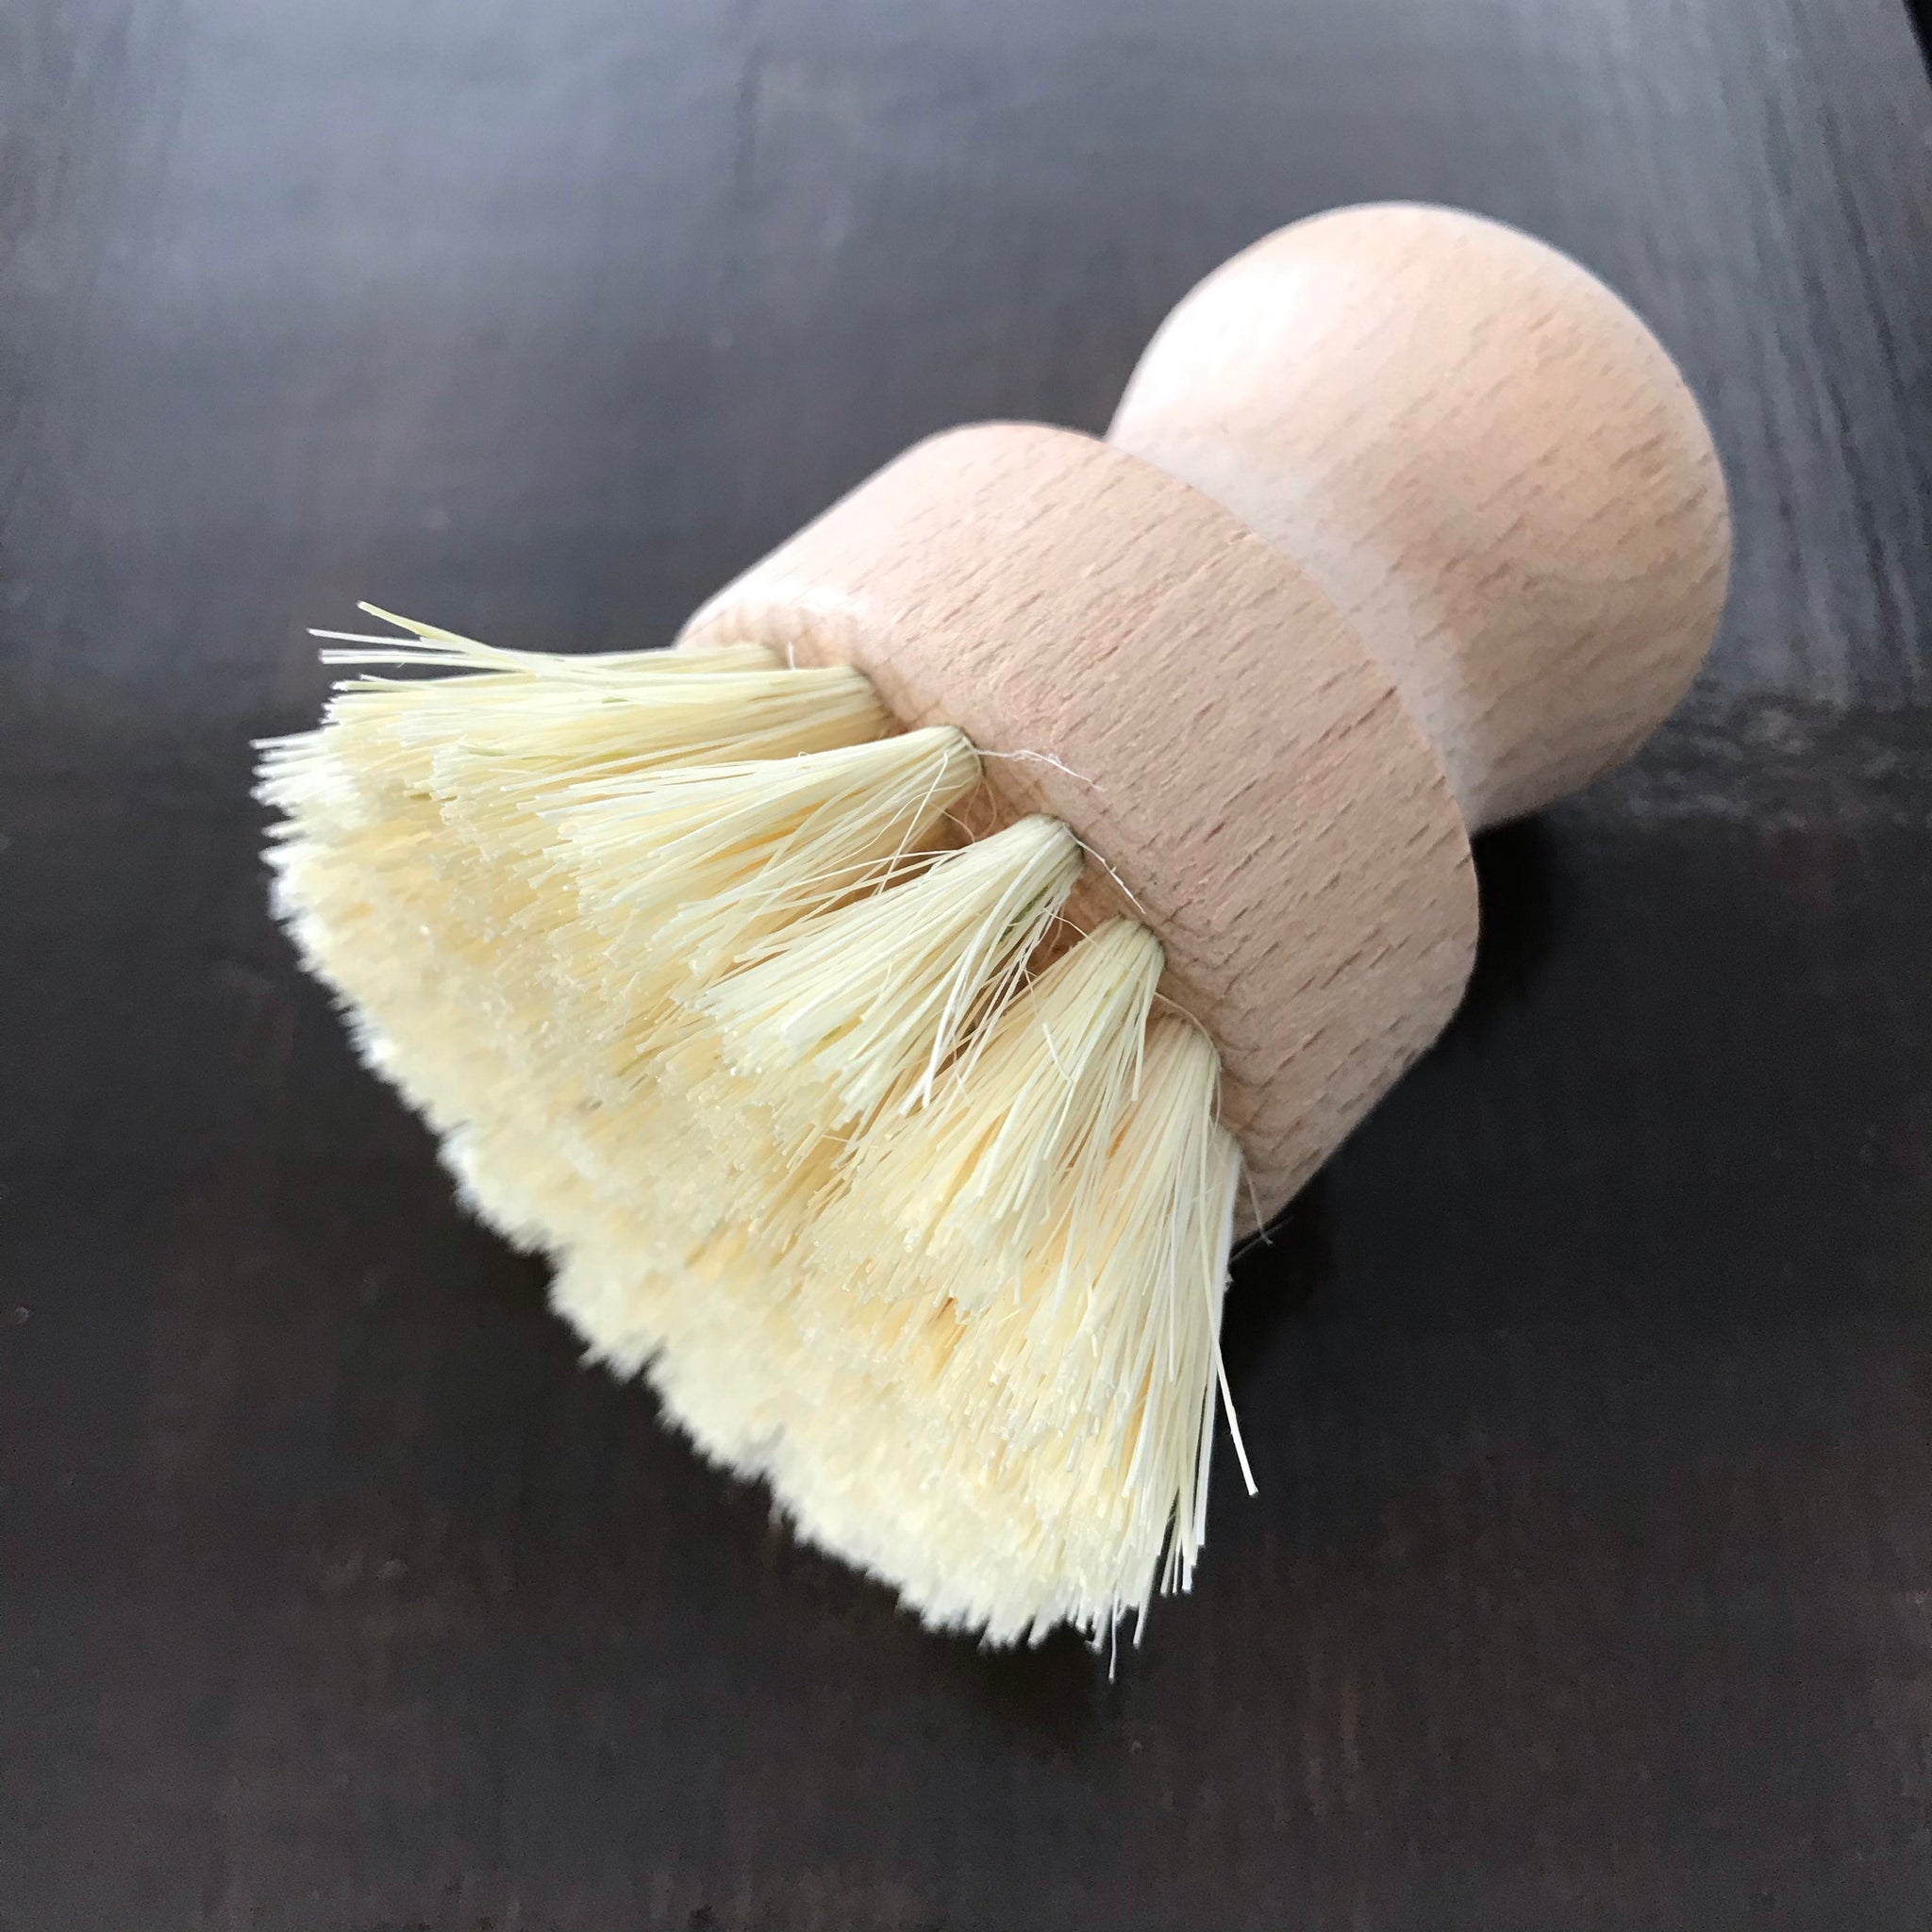 buy soft bristle pot kitchen scrubber brush in canada